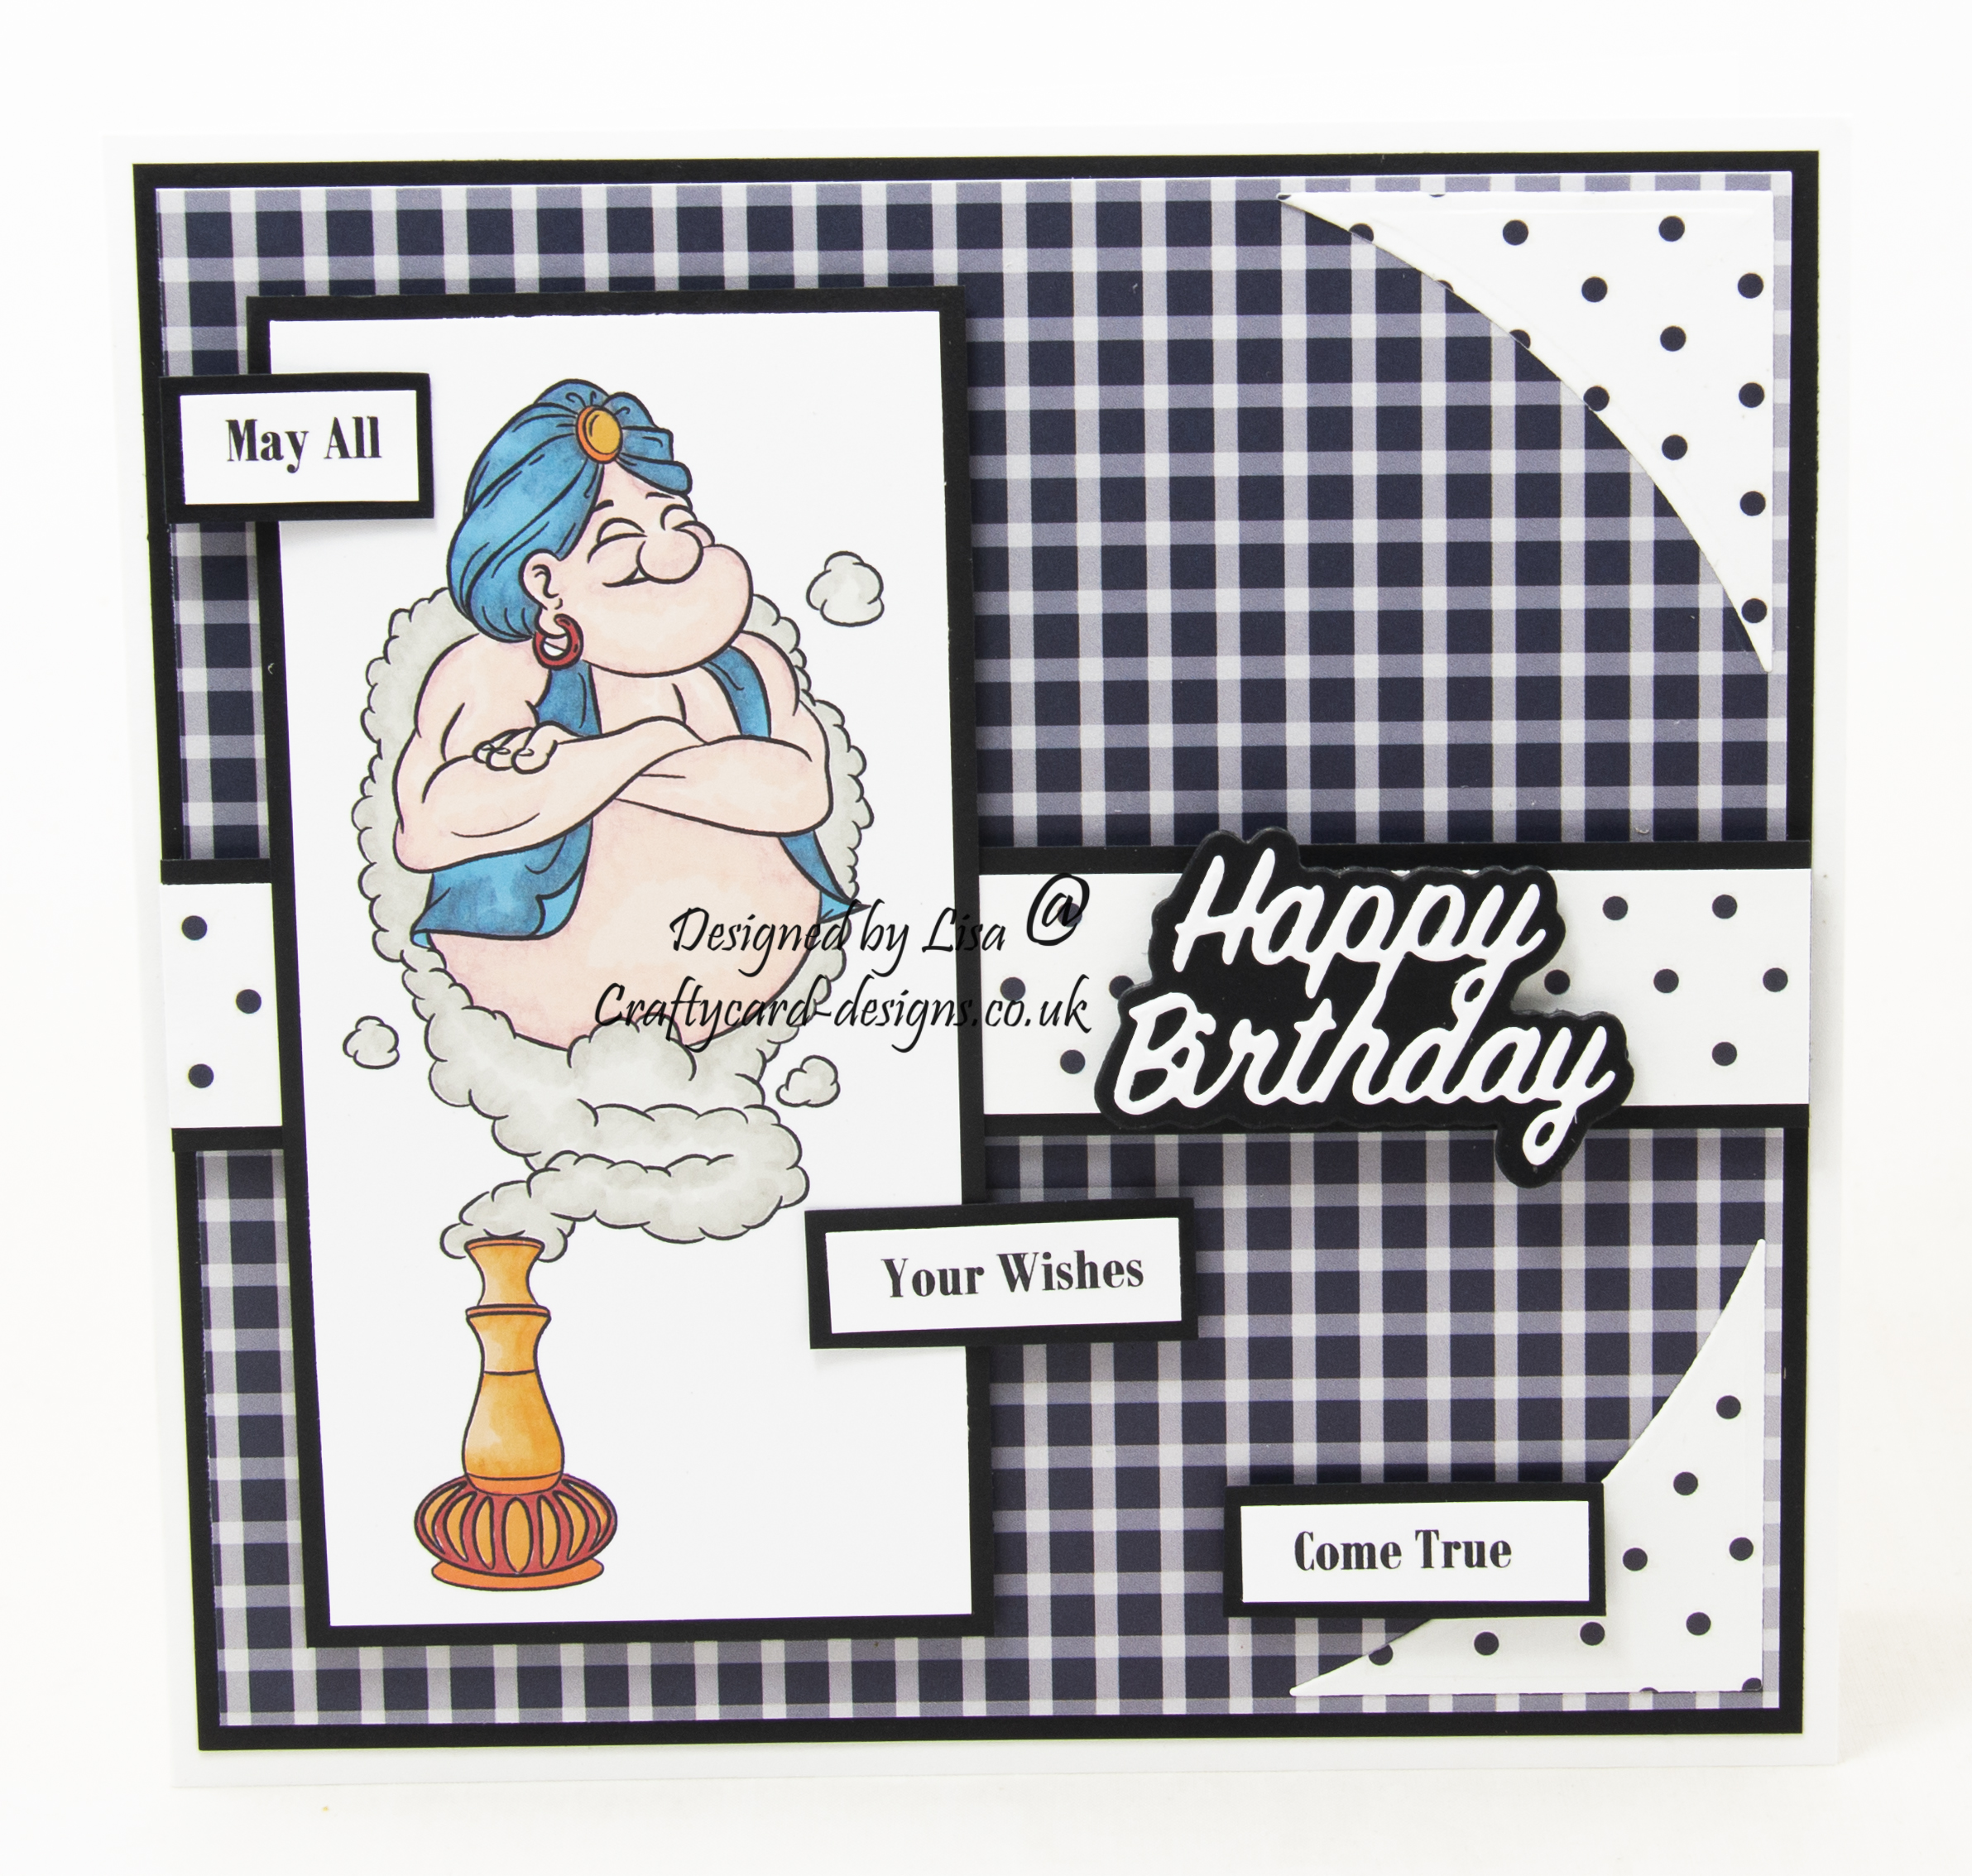 Handmade card using a digital image from Dr. Digi's House Of Stamps called I Dream If Genie